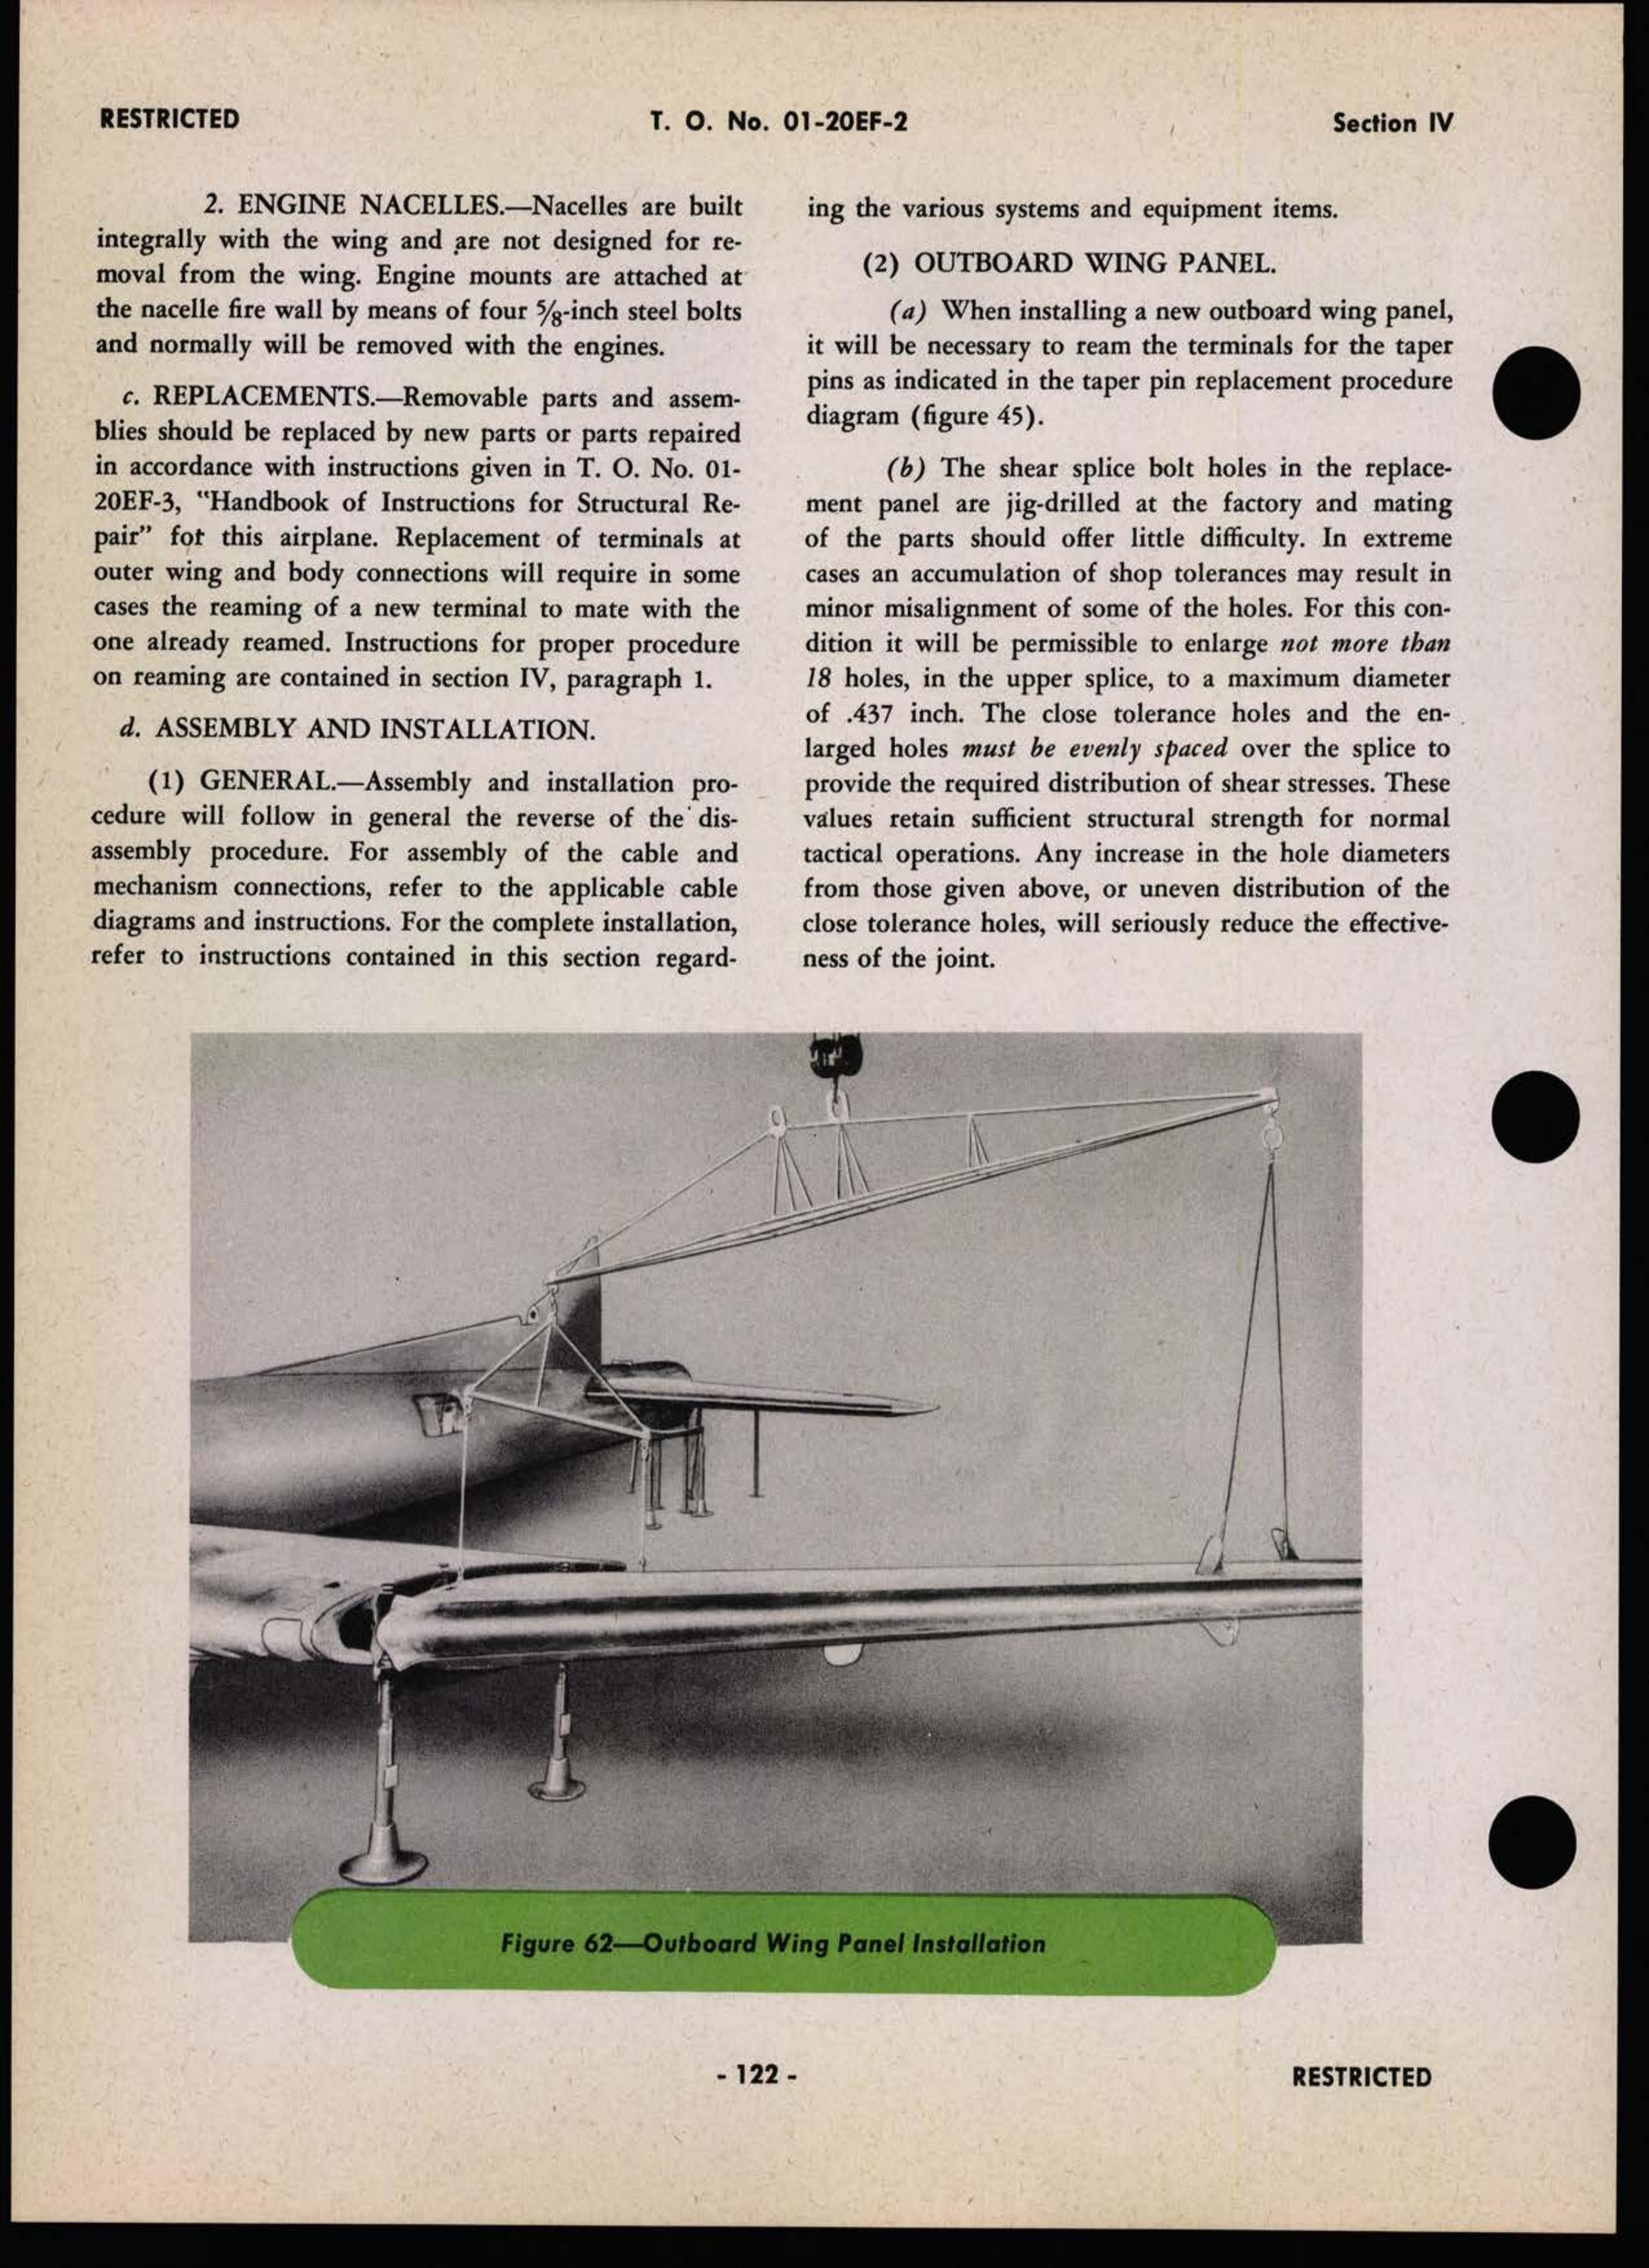 Sample page 128 from AirCorps Library document: Erection & Maintenance - B-17F - Dec 1943